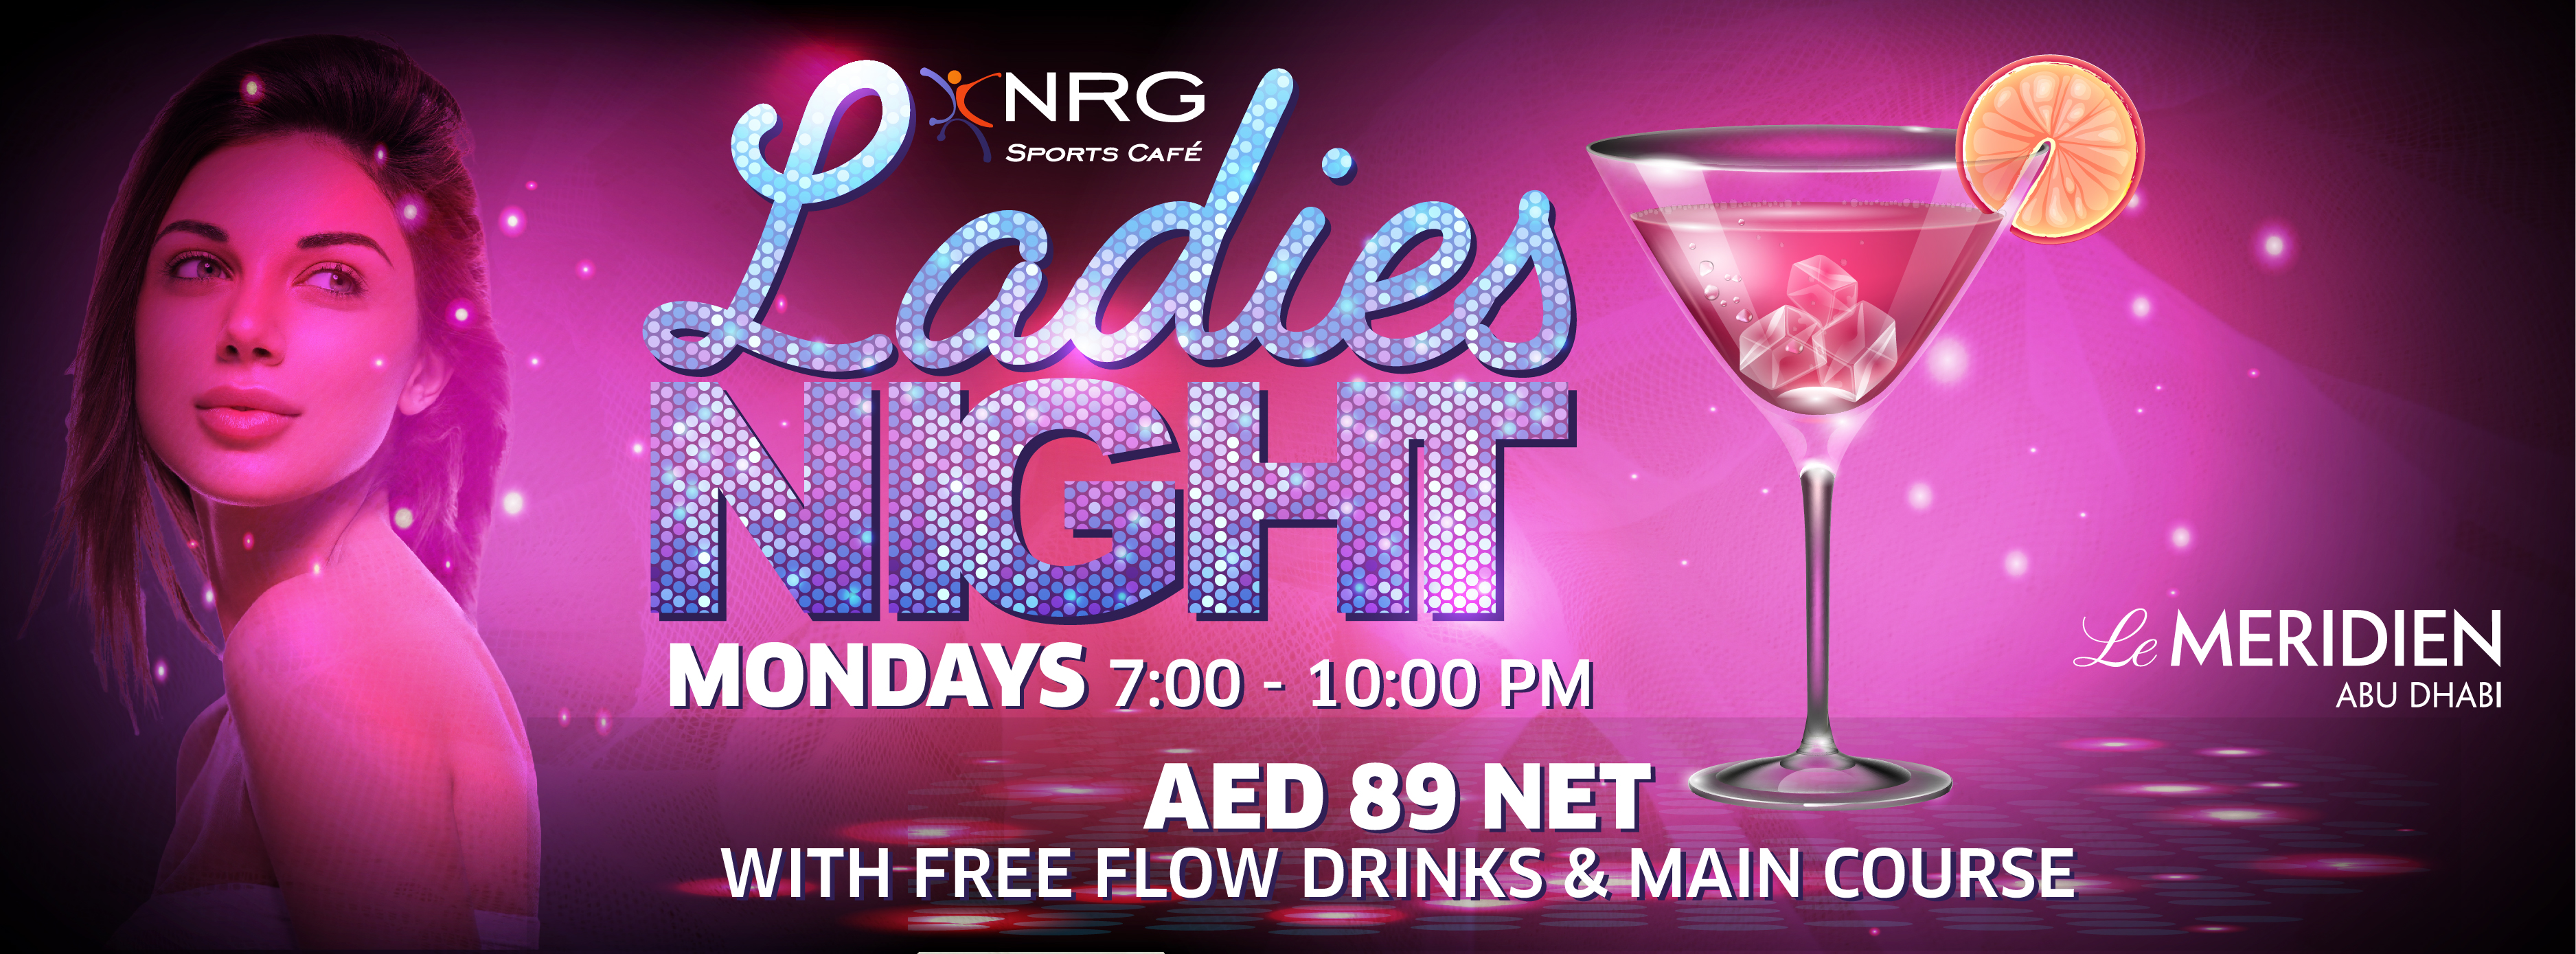 NRG Ladies Night